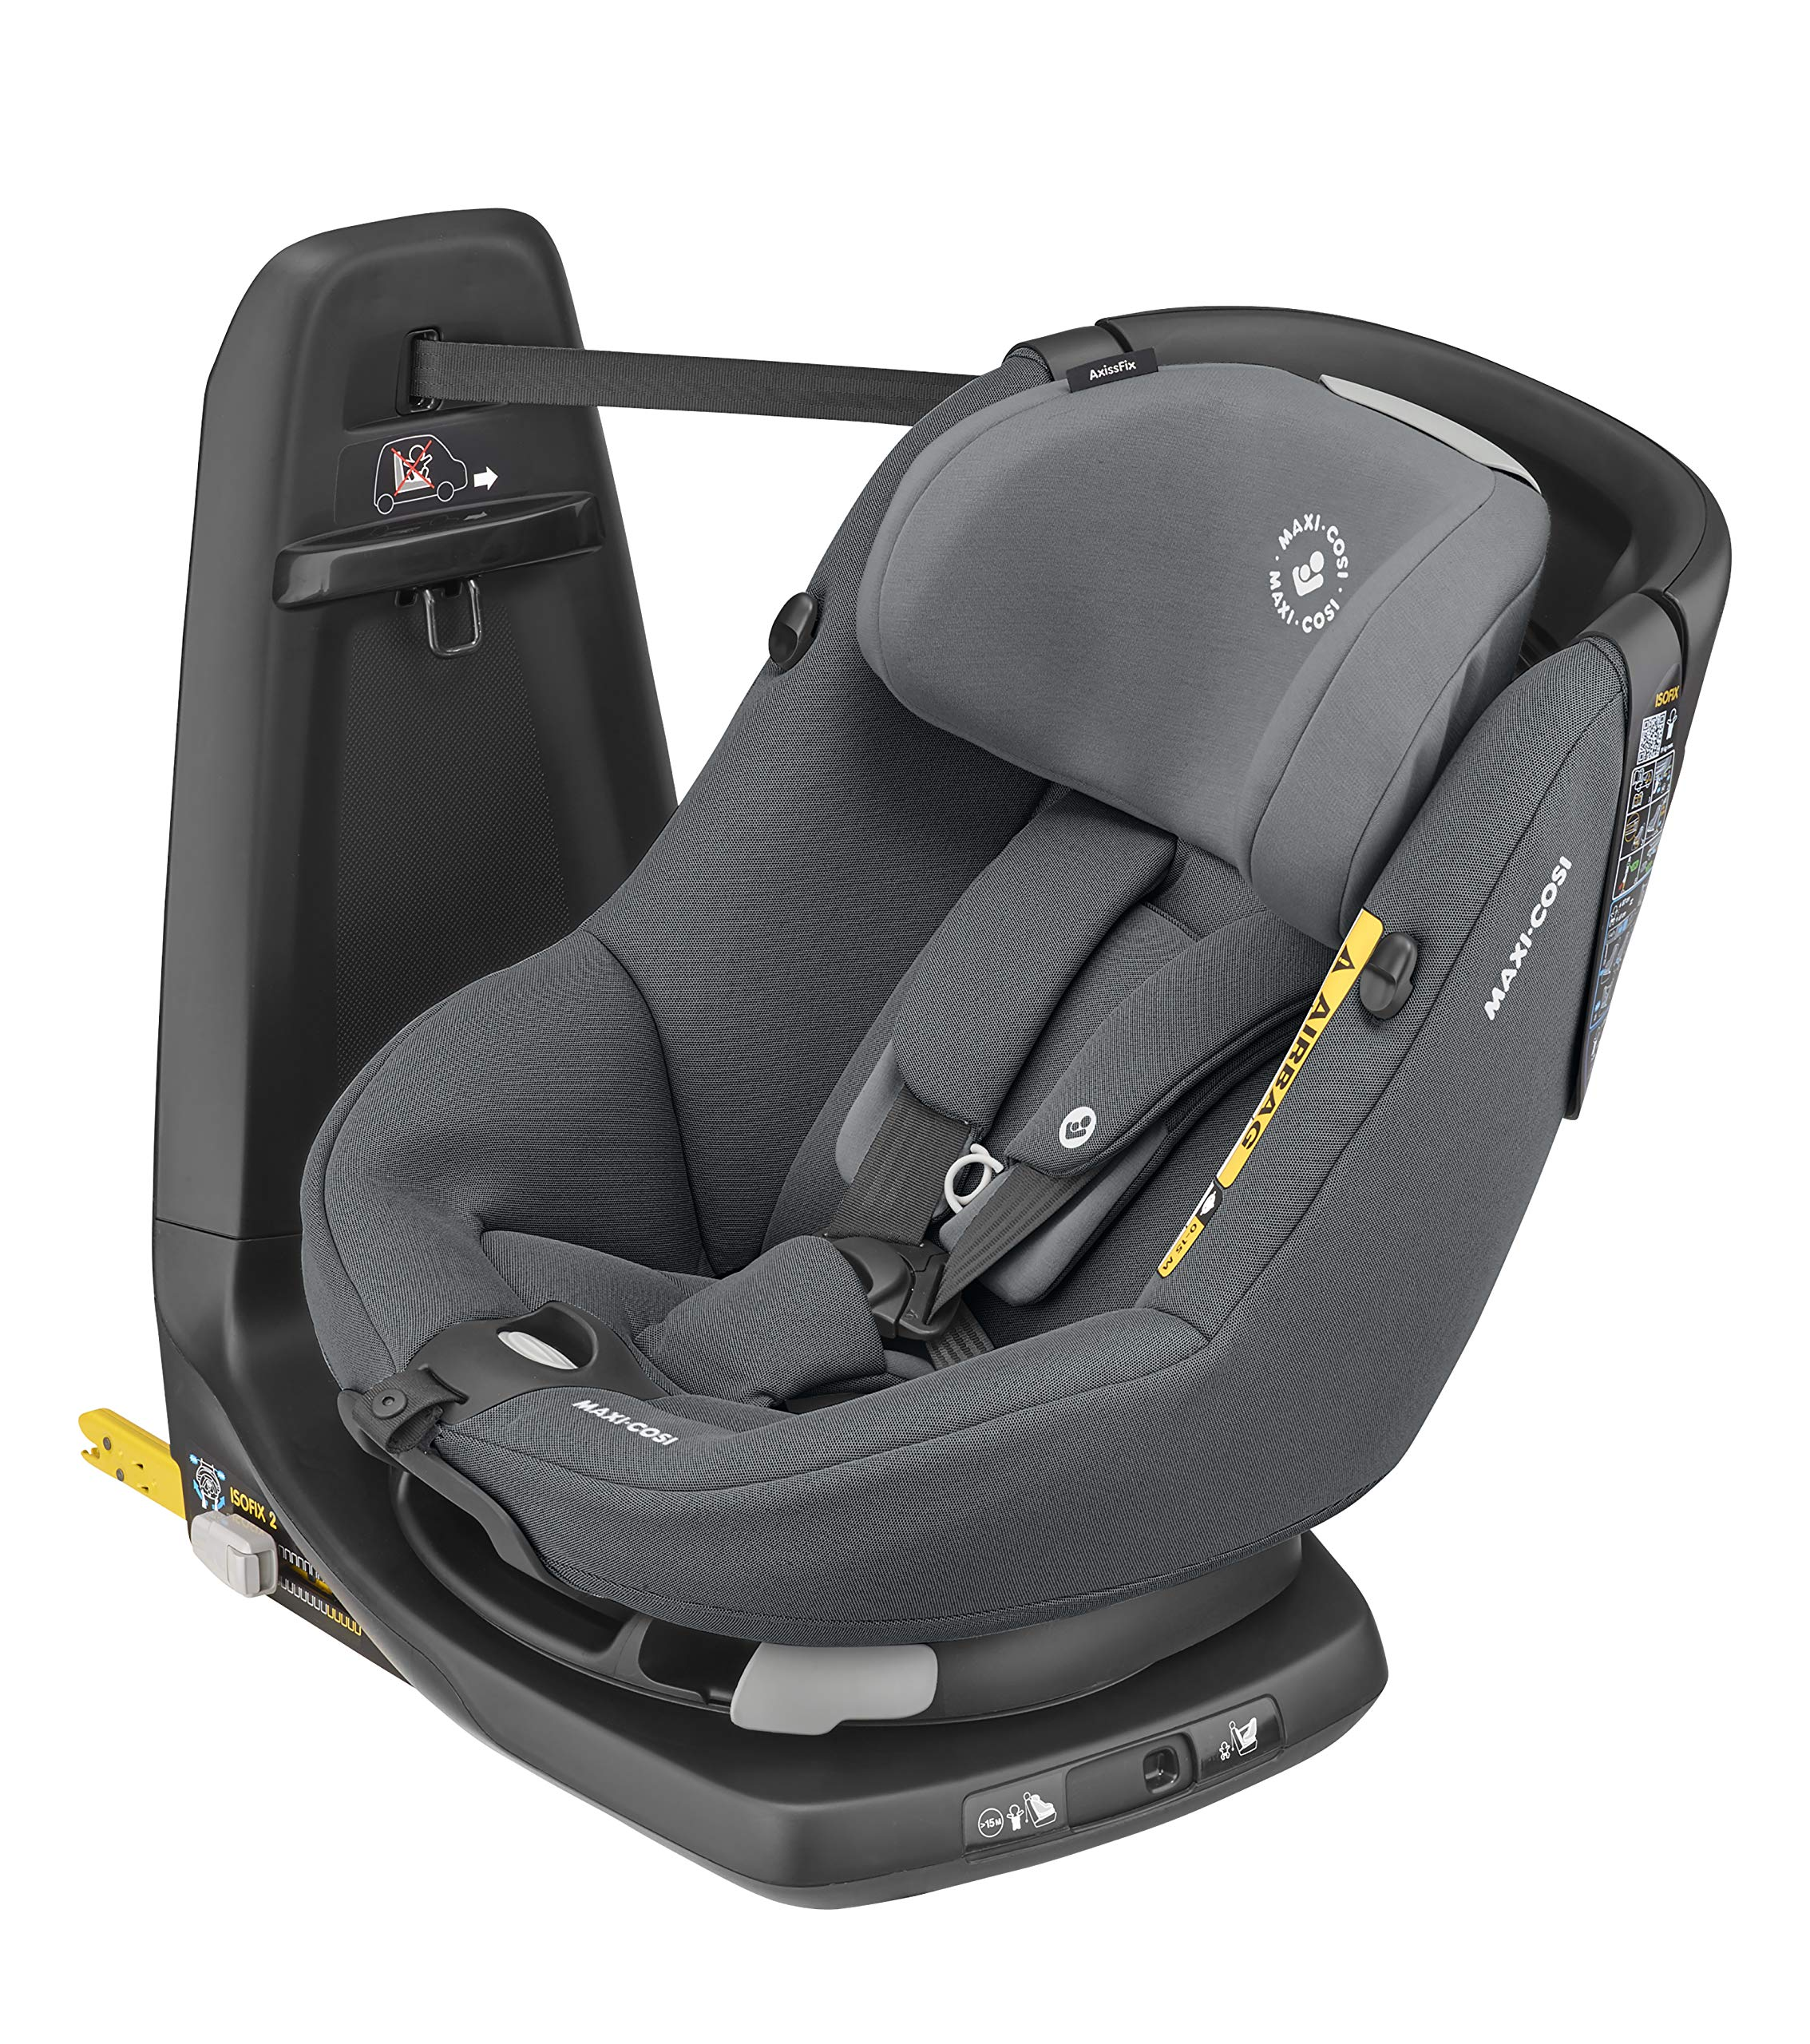 Maxi-Cosi Axissfix Toddler Car Seat, Swivel Car Seat, 4 Months - 4 Years, 61-105 cm, Authentic Graphite Maxi-Cosi Toddler car seat, suitable from approx. 4 months up to 4 years (61 - 105 cm) 360° swivel car seat, to easily get your child in and out the seat I-size (r129) car seat legislation, due to extended rearward-facing travel and improved side impact protection 1